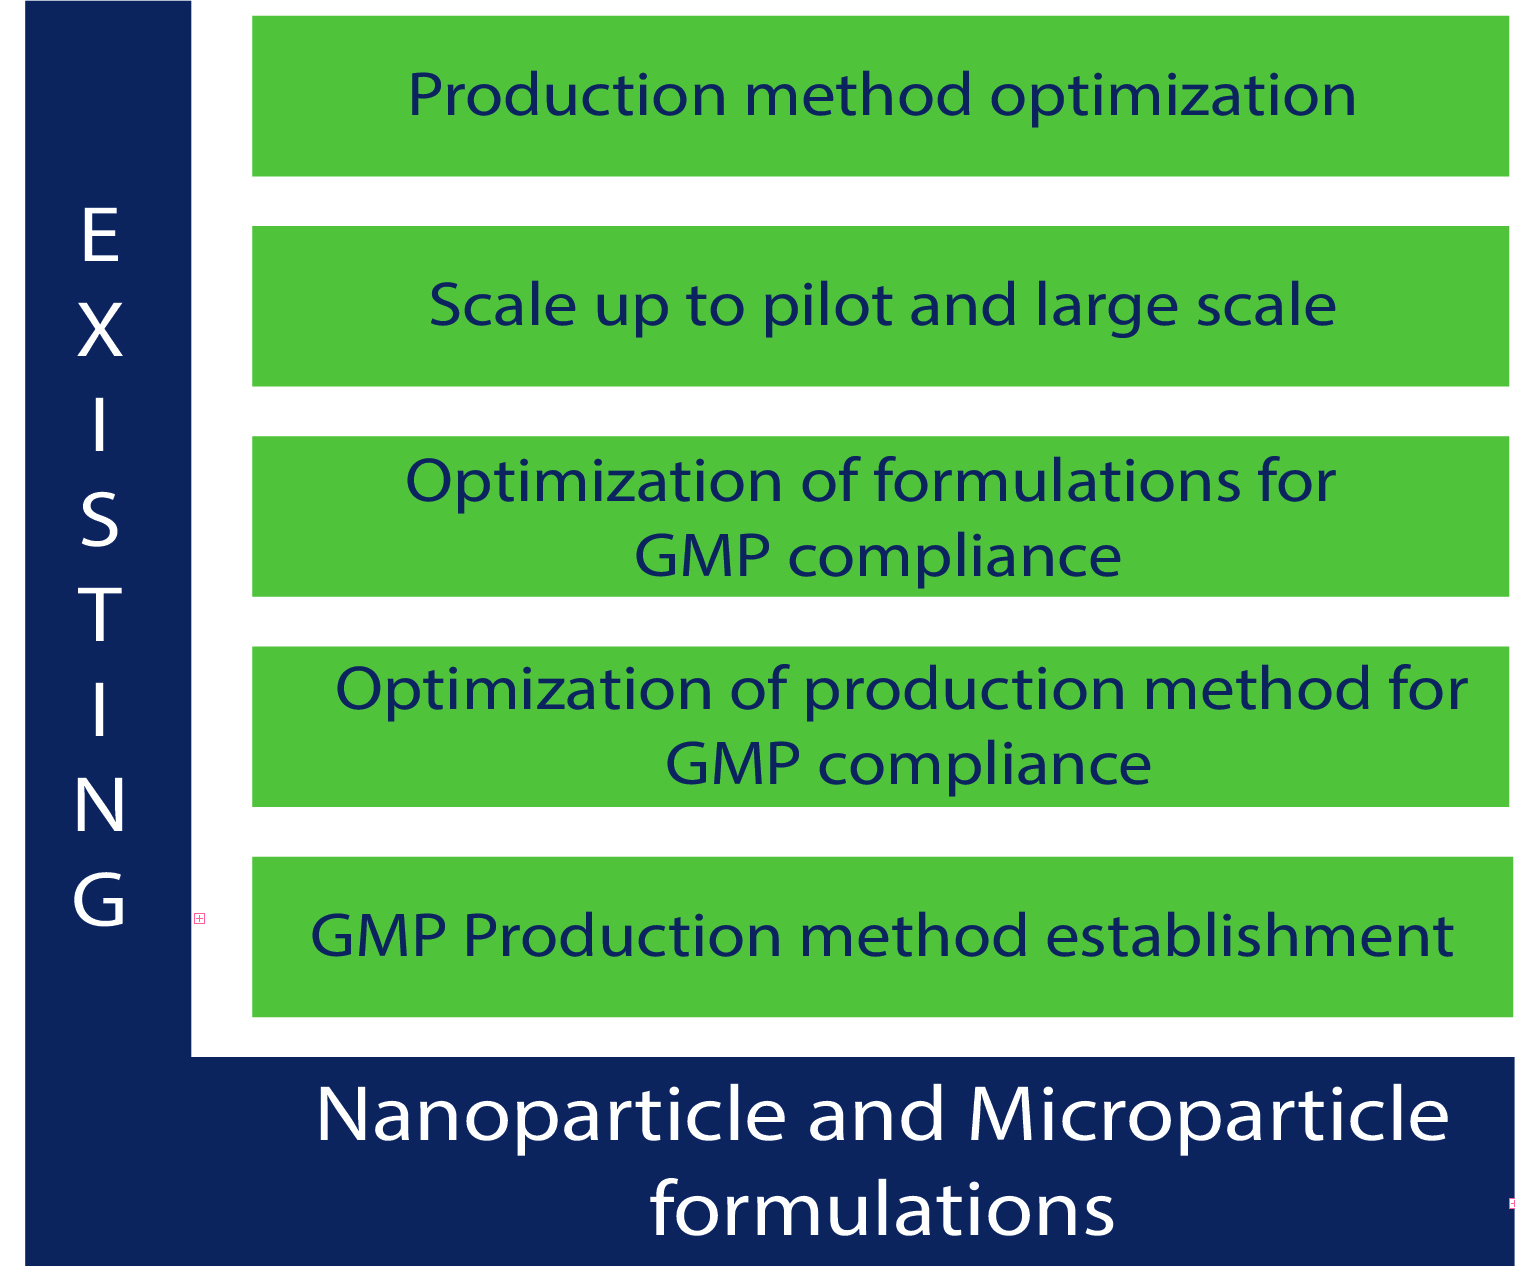 Existing - Nanoparticle and Microparticle formulations